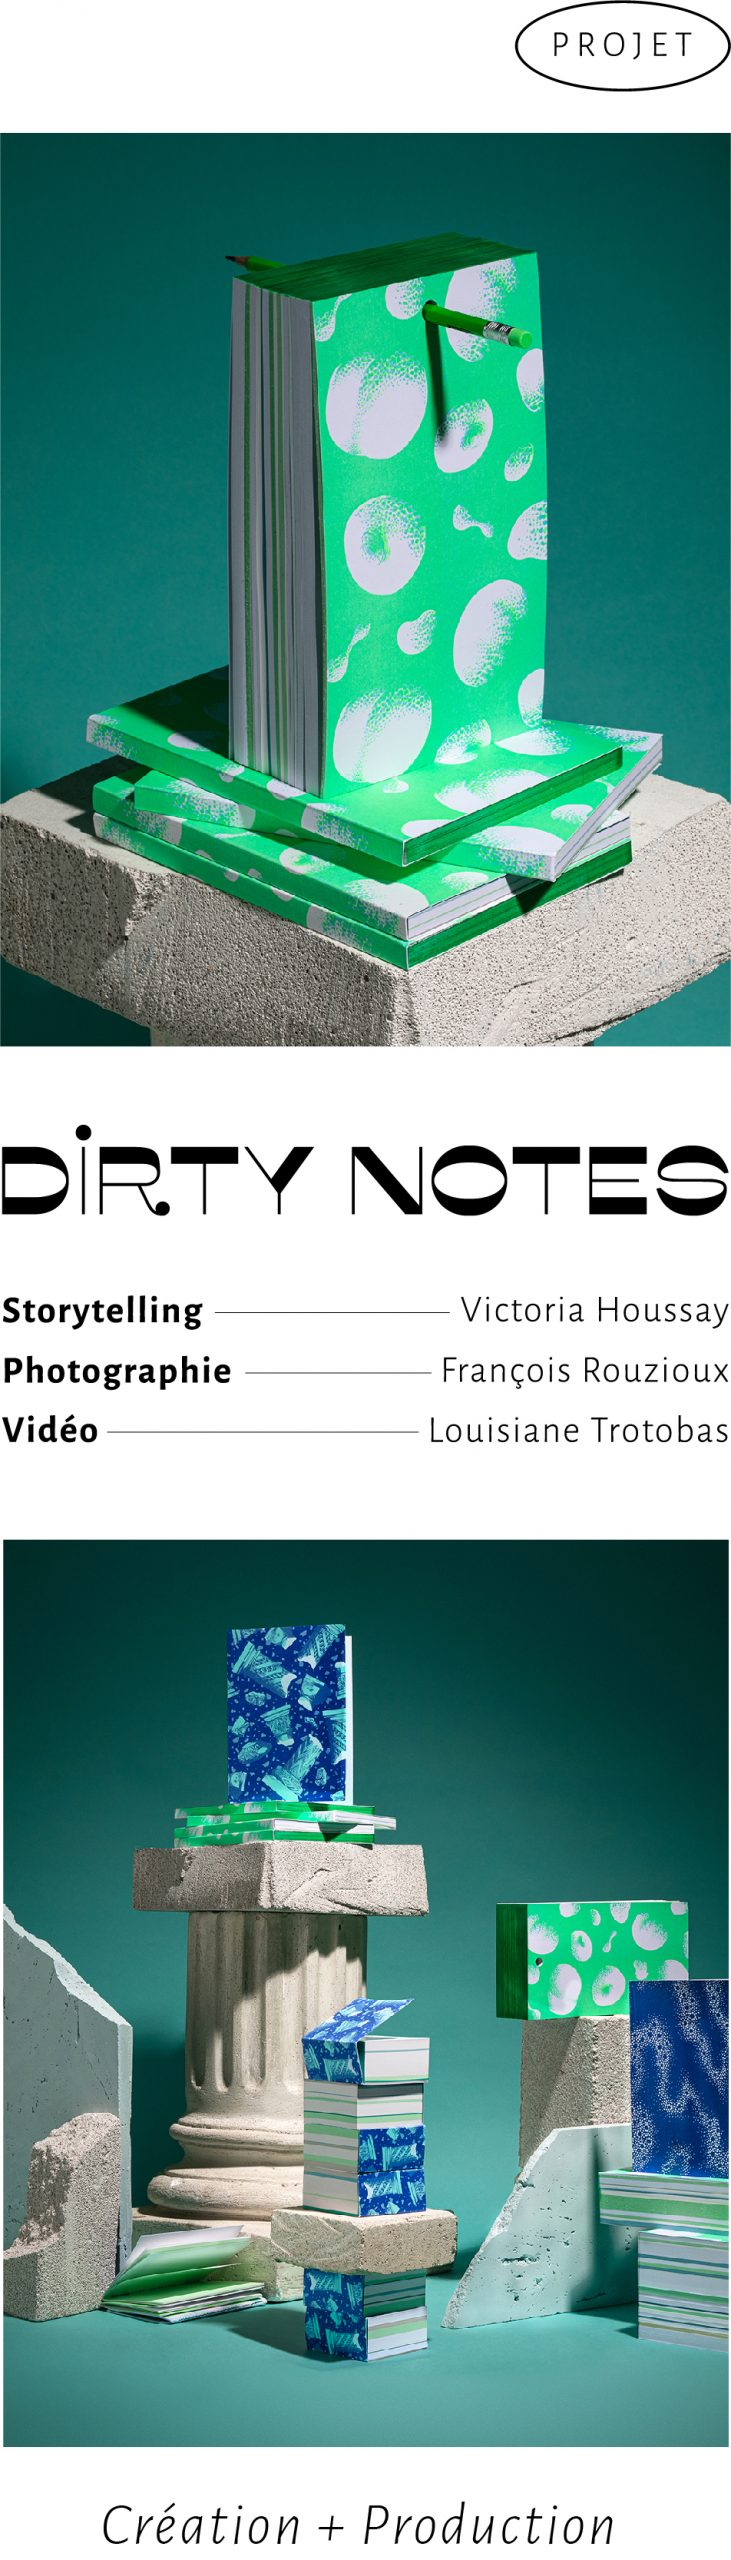 agence bienvu upcycling creation production paris dirtynotes photographie video set design storytelling 3.2 1